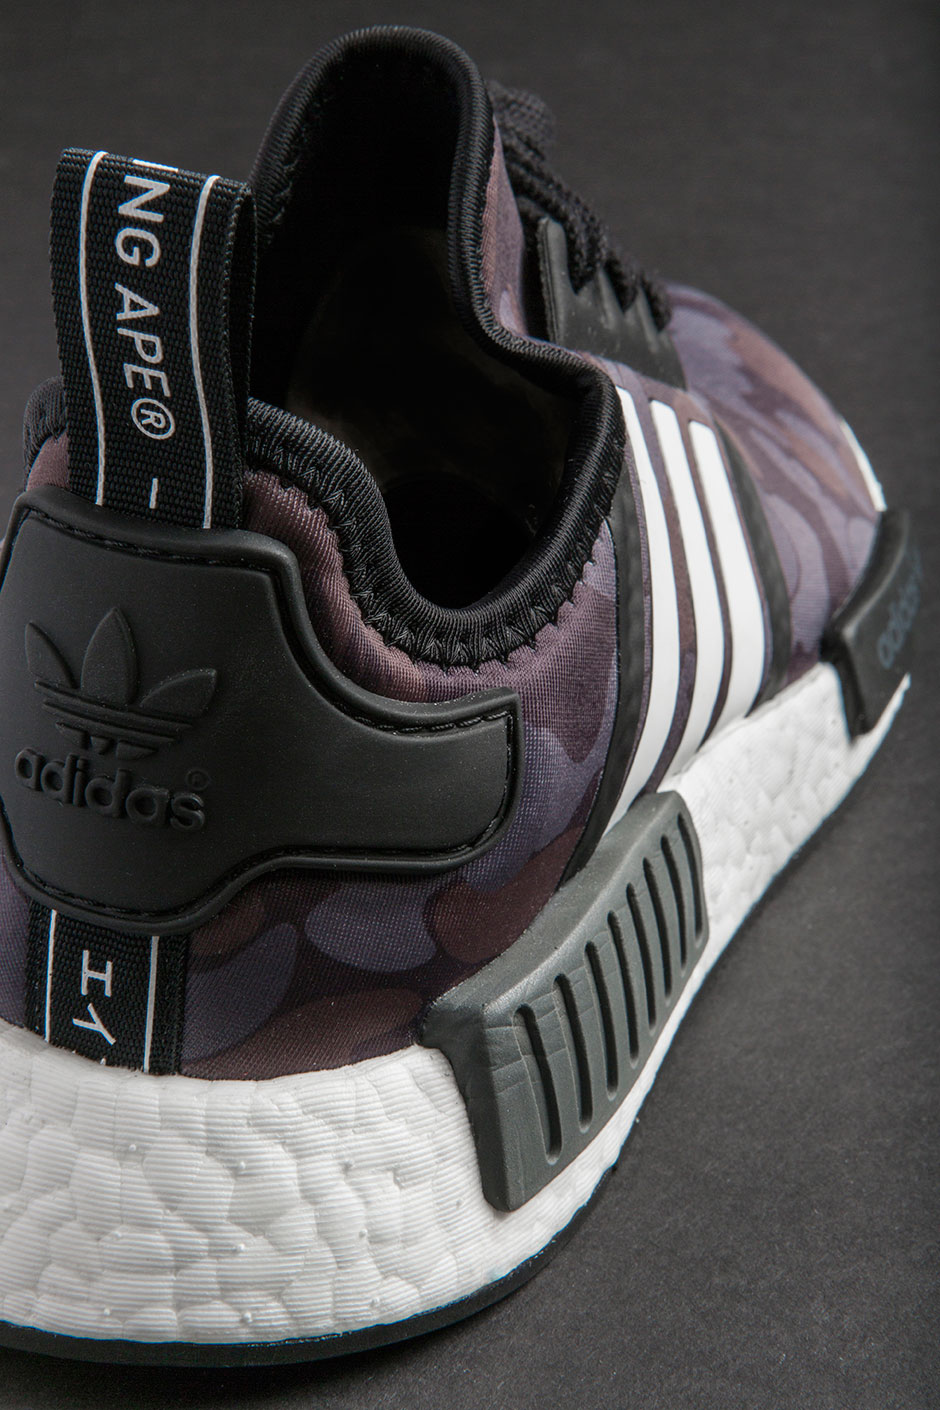 sale retailer cac26 e4ceb BAPE adidas NMD Release Info + Detailed Photos | SneakerNews.com